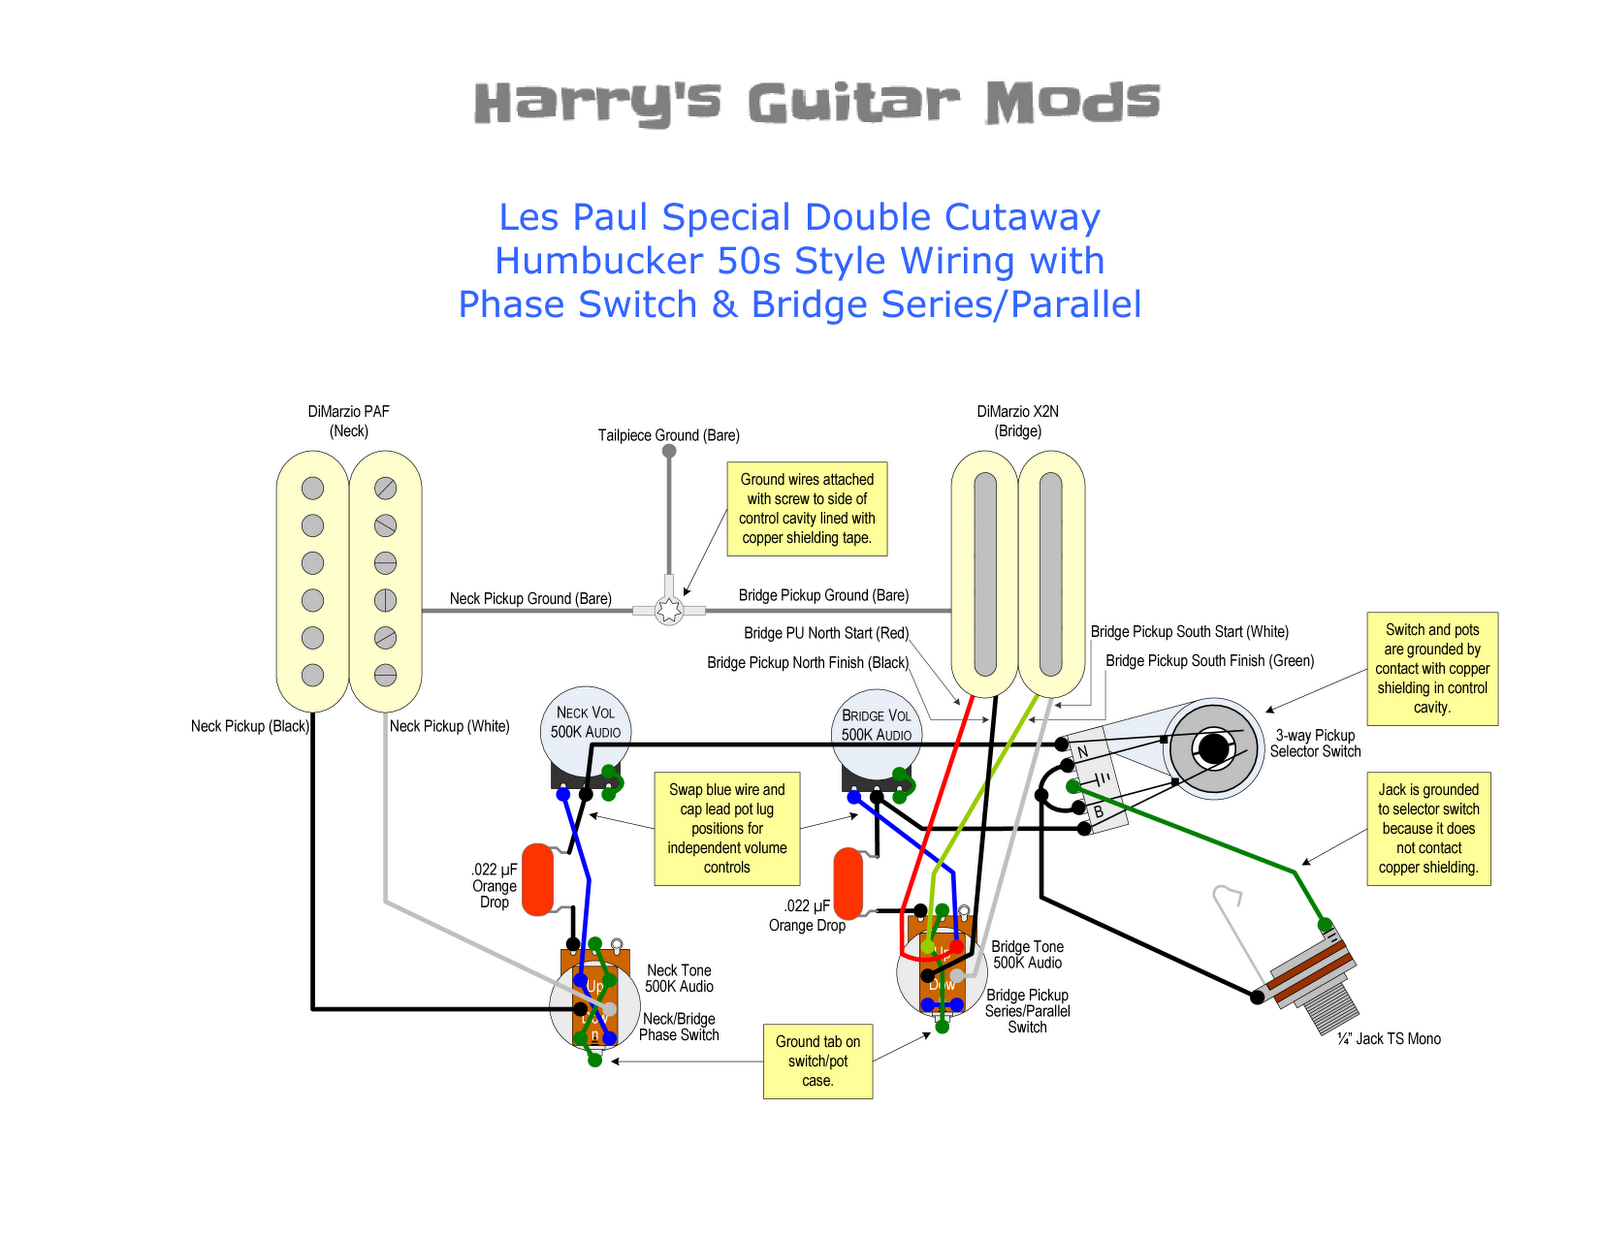 LPS+Wiring+Diagram harry's guitar mods controls wiring upgrade pot of gold wiring diagram at gsmportal.co